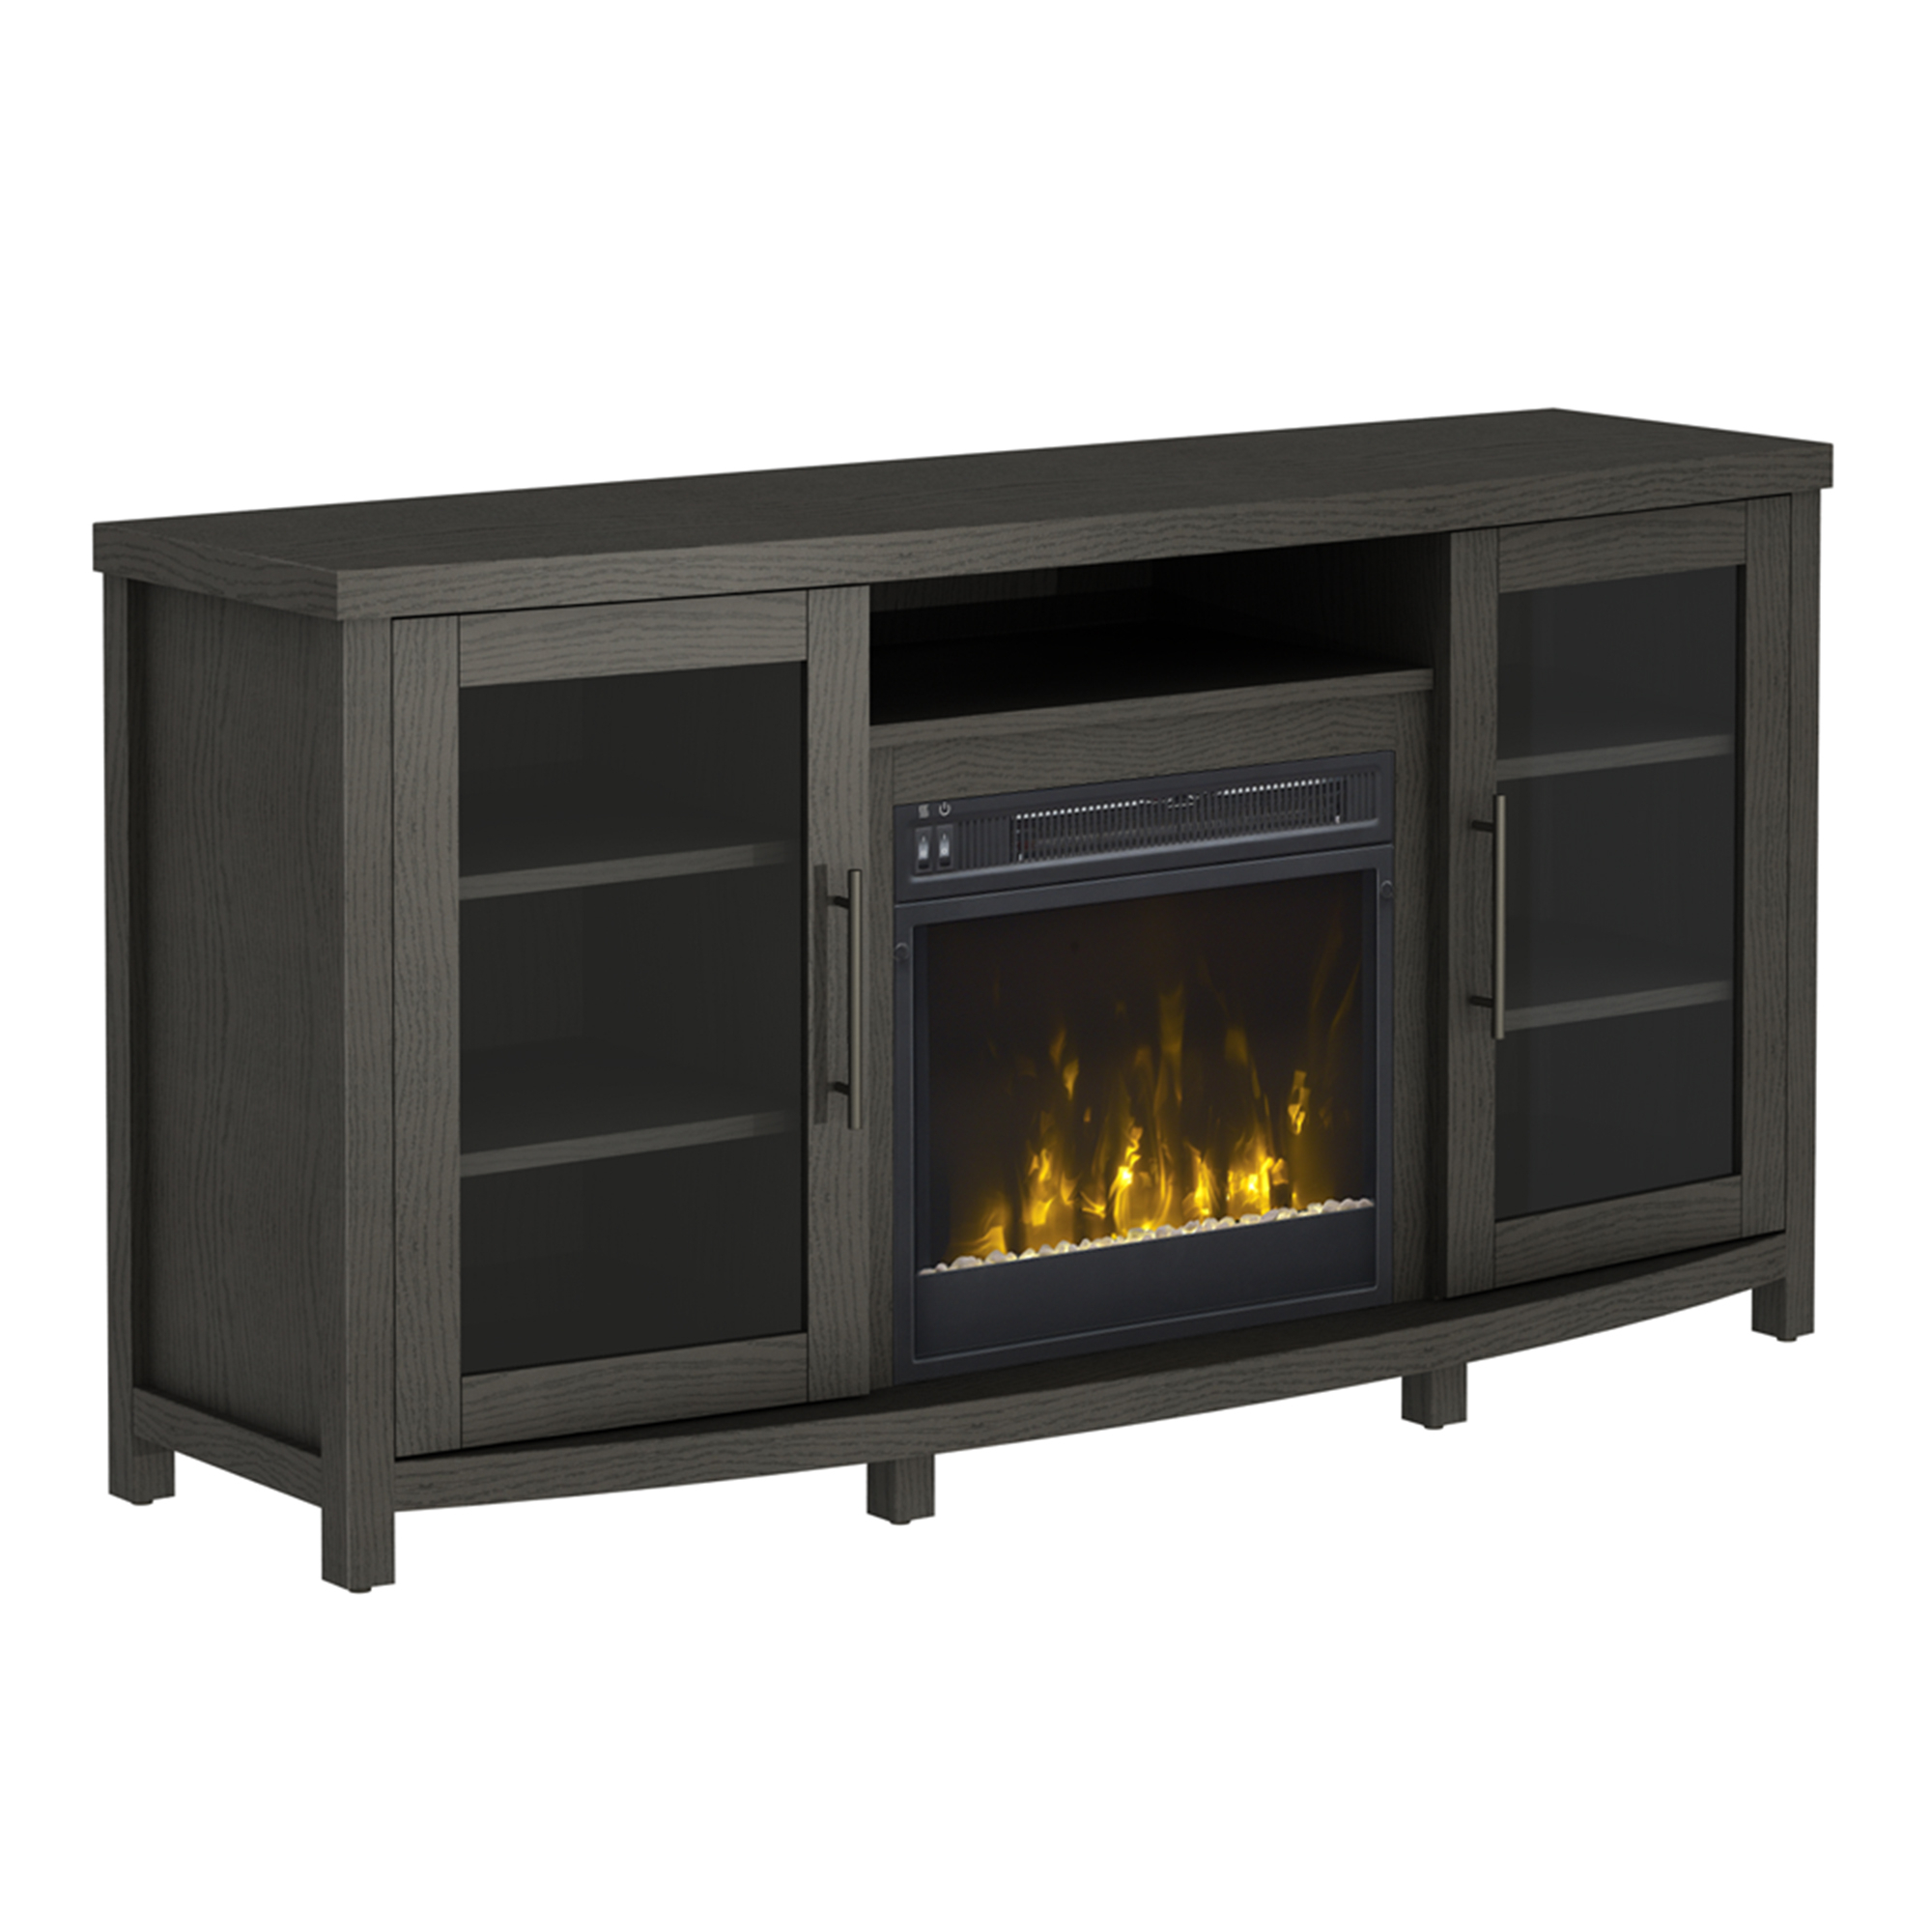 """Newest Rossville Tv Stand For Tvs Up To 60 With Electric Fireplace Intended For Hal Tv Stands For Tvs Up To 60"""" (View 13 of 25)"""